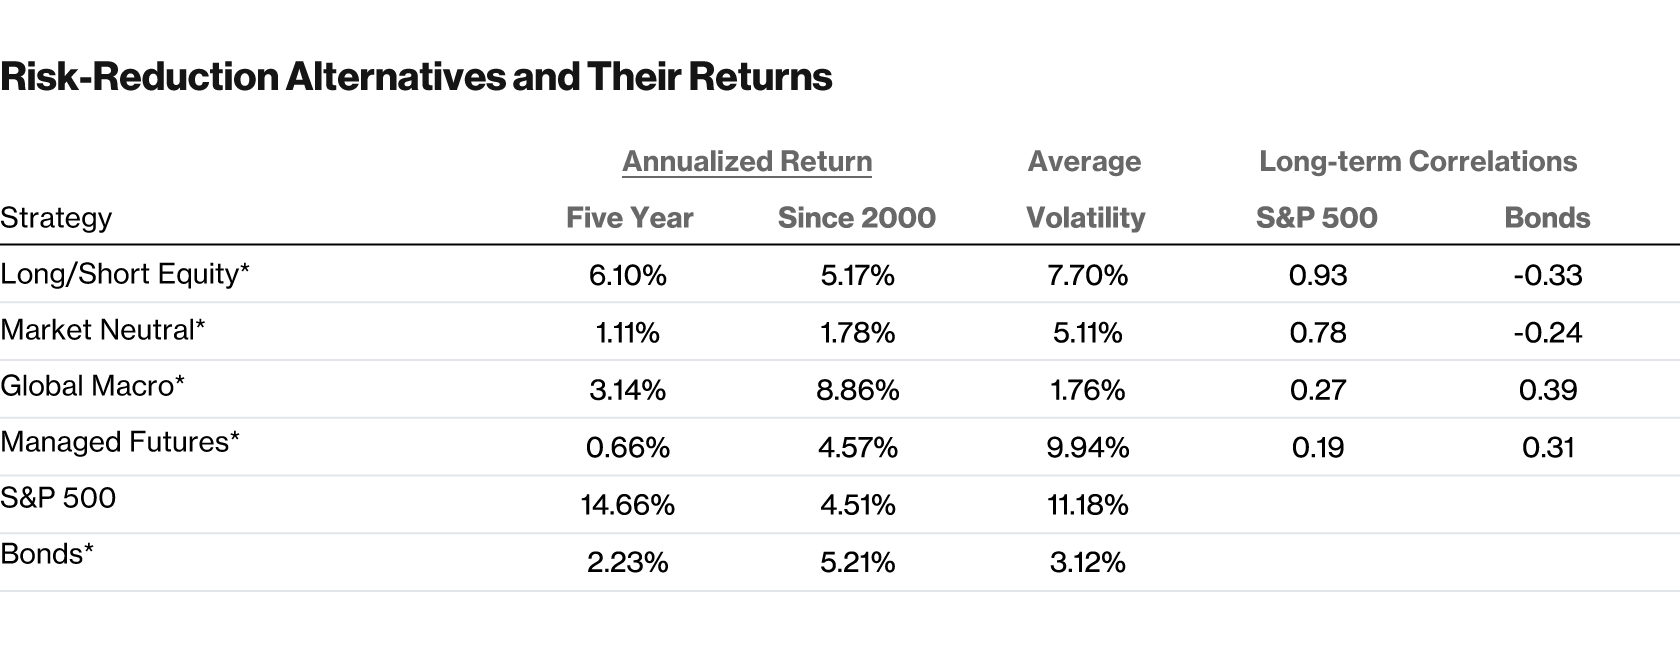 Table 2. Risk-Reduction Alternatives and Their Returns